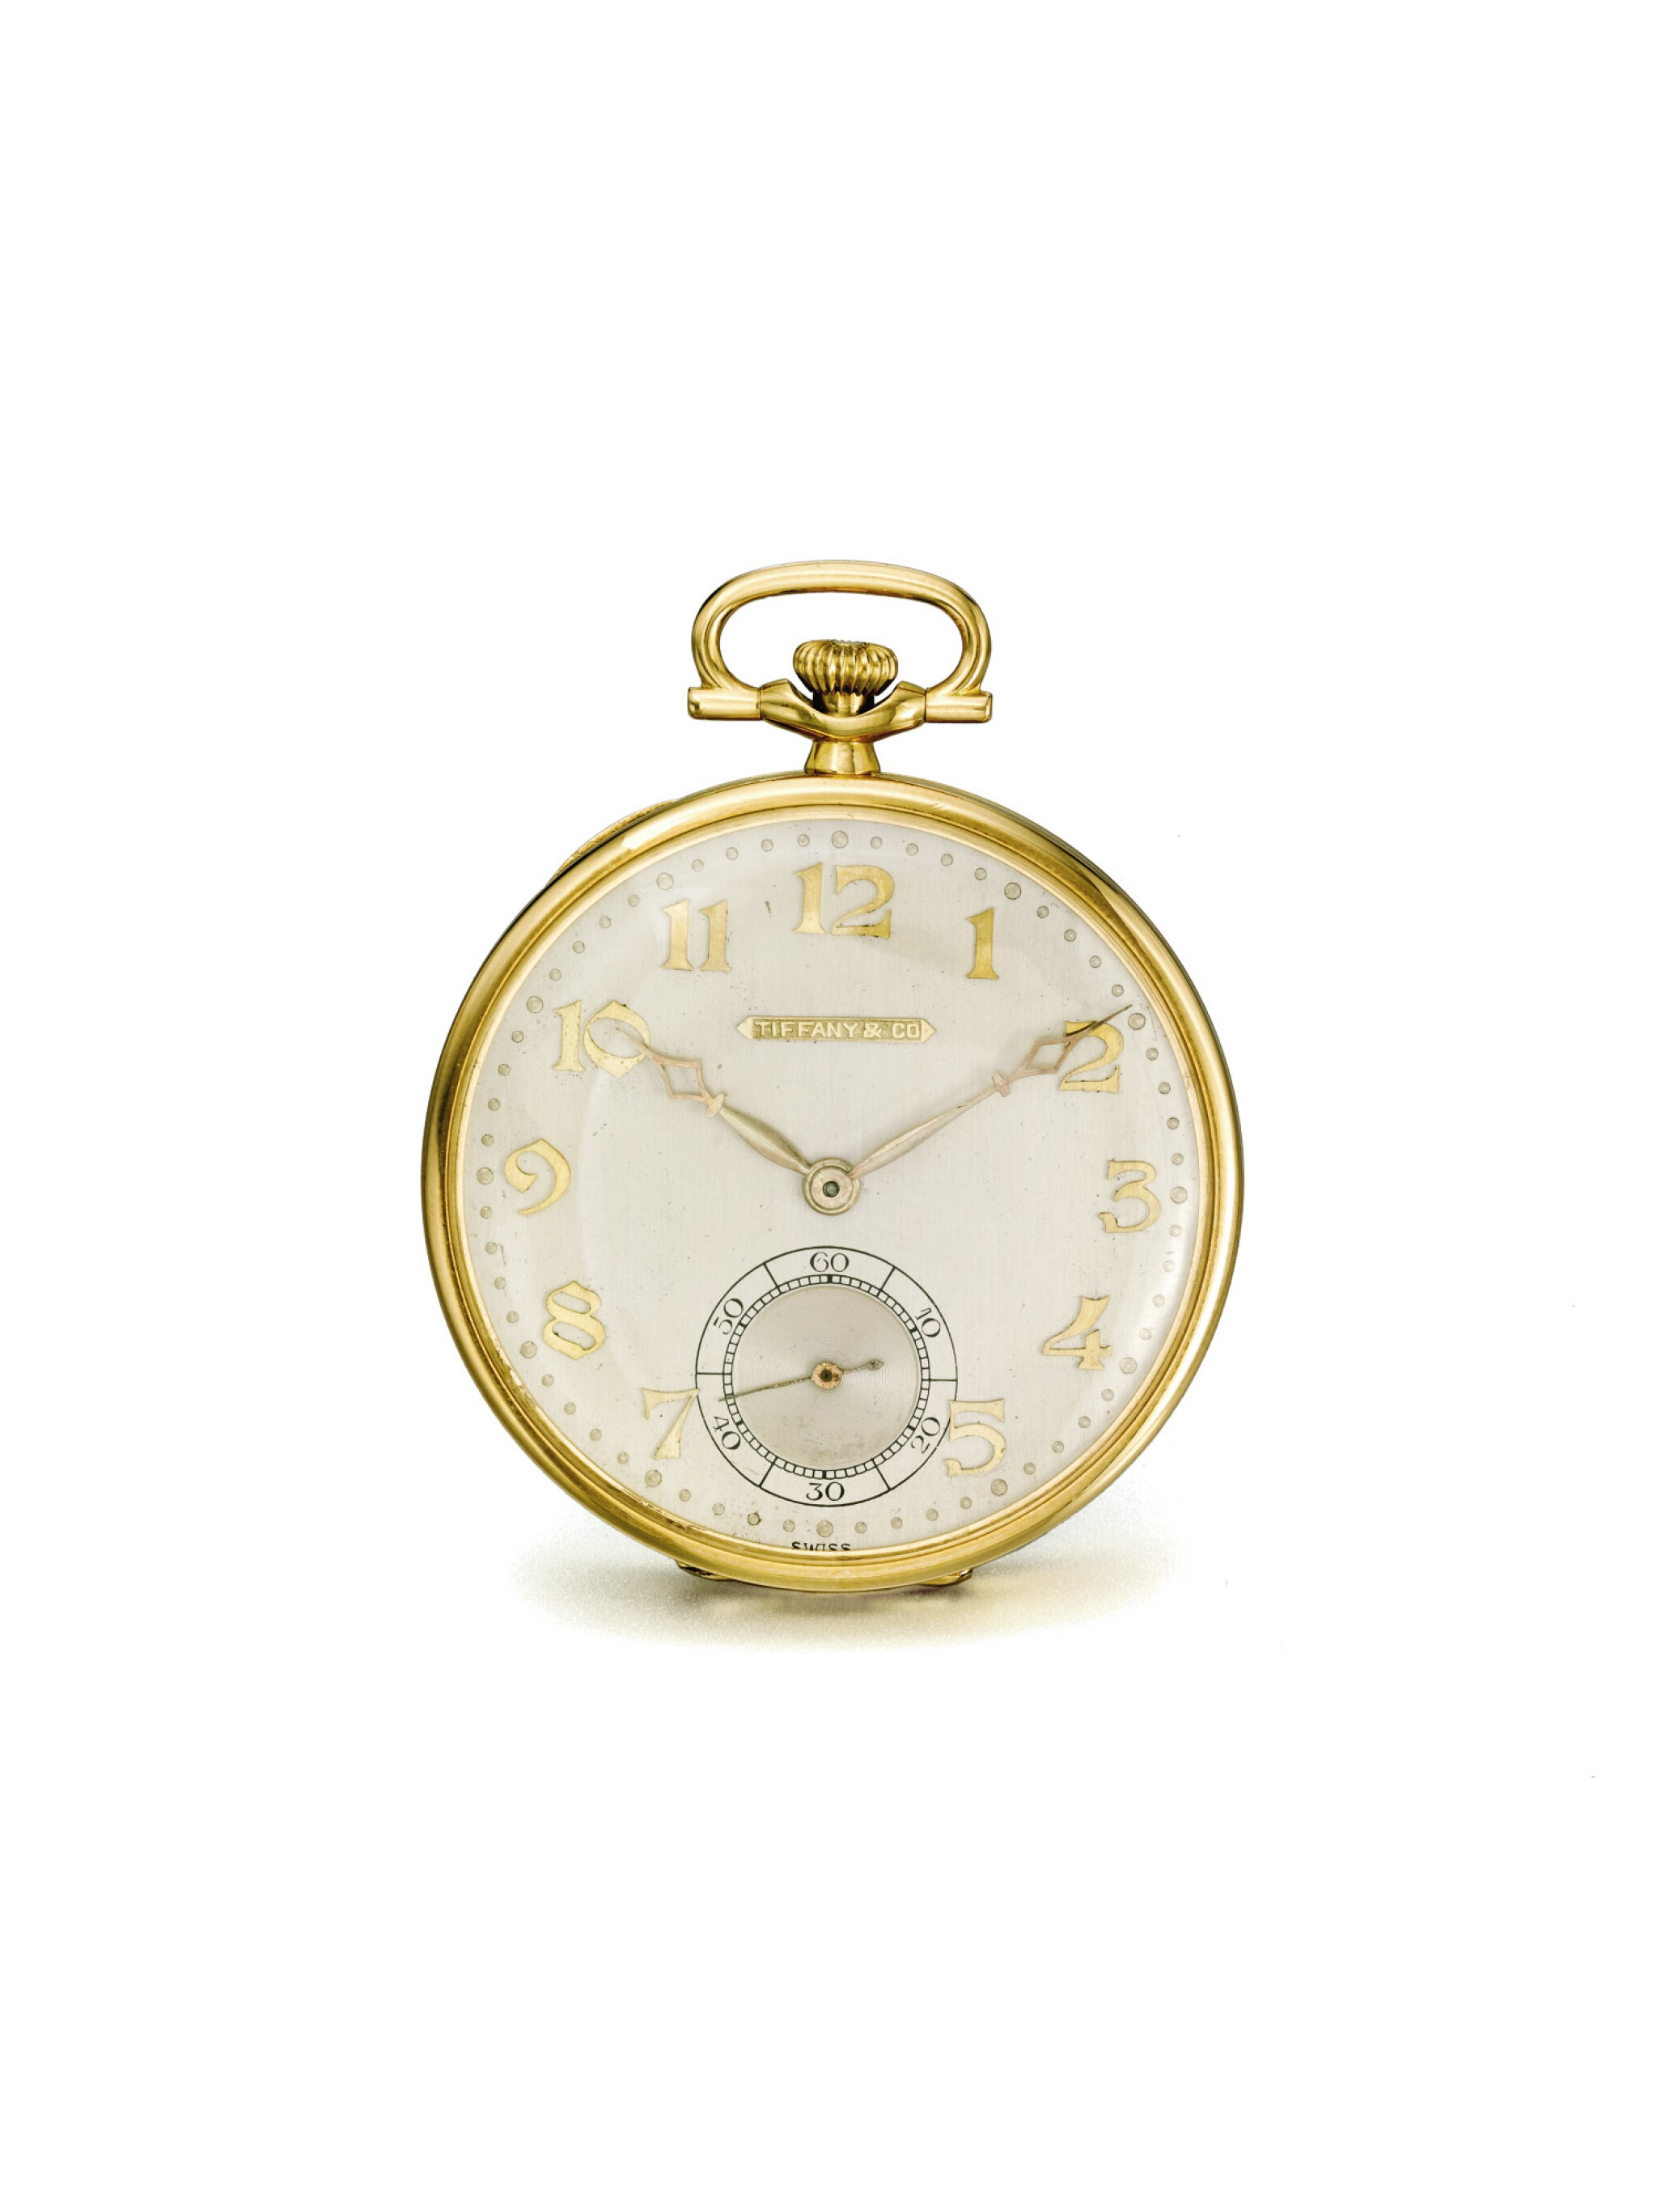 LONGINES | RETAILED BY TIFFANY & CO.: A PLATINUM AND YELLOW GOLD OPEN FACED WATCH CIRCA 1925